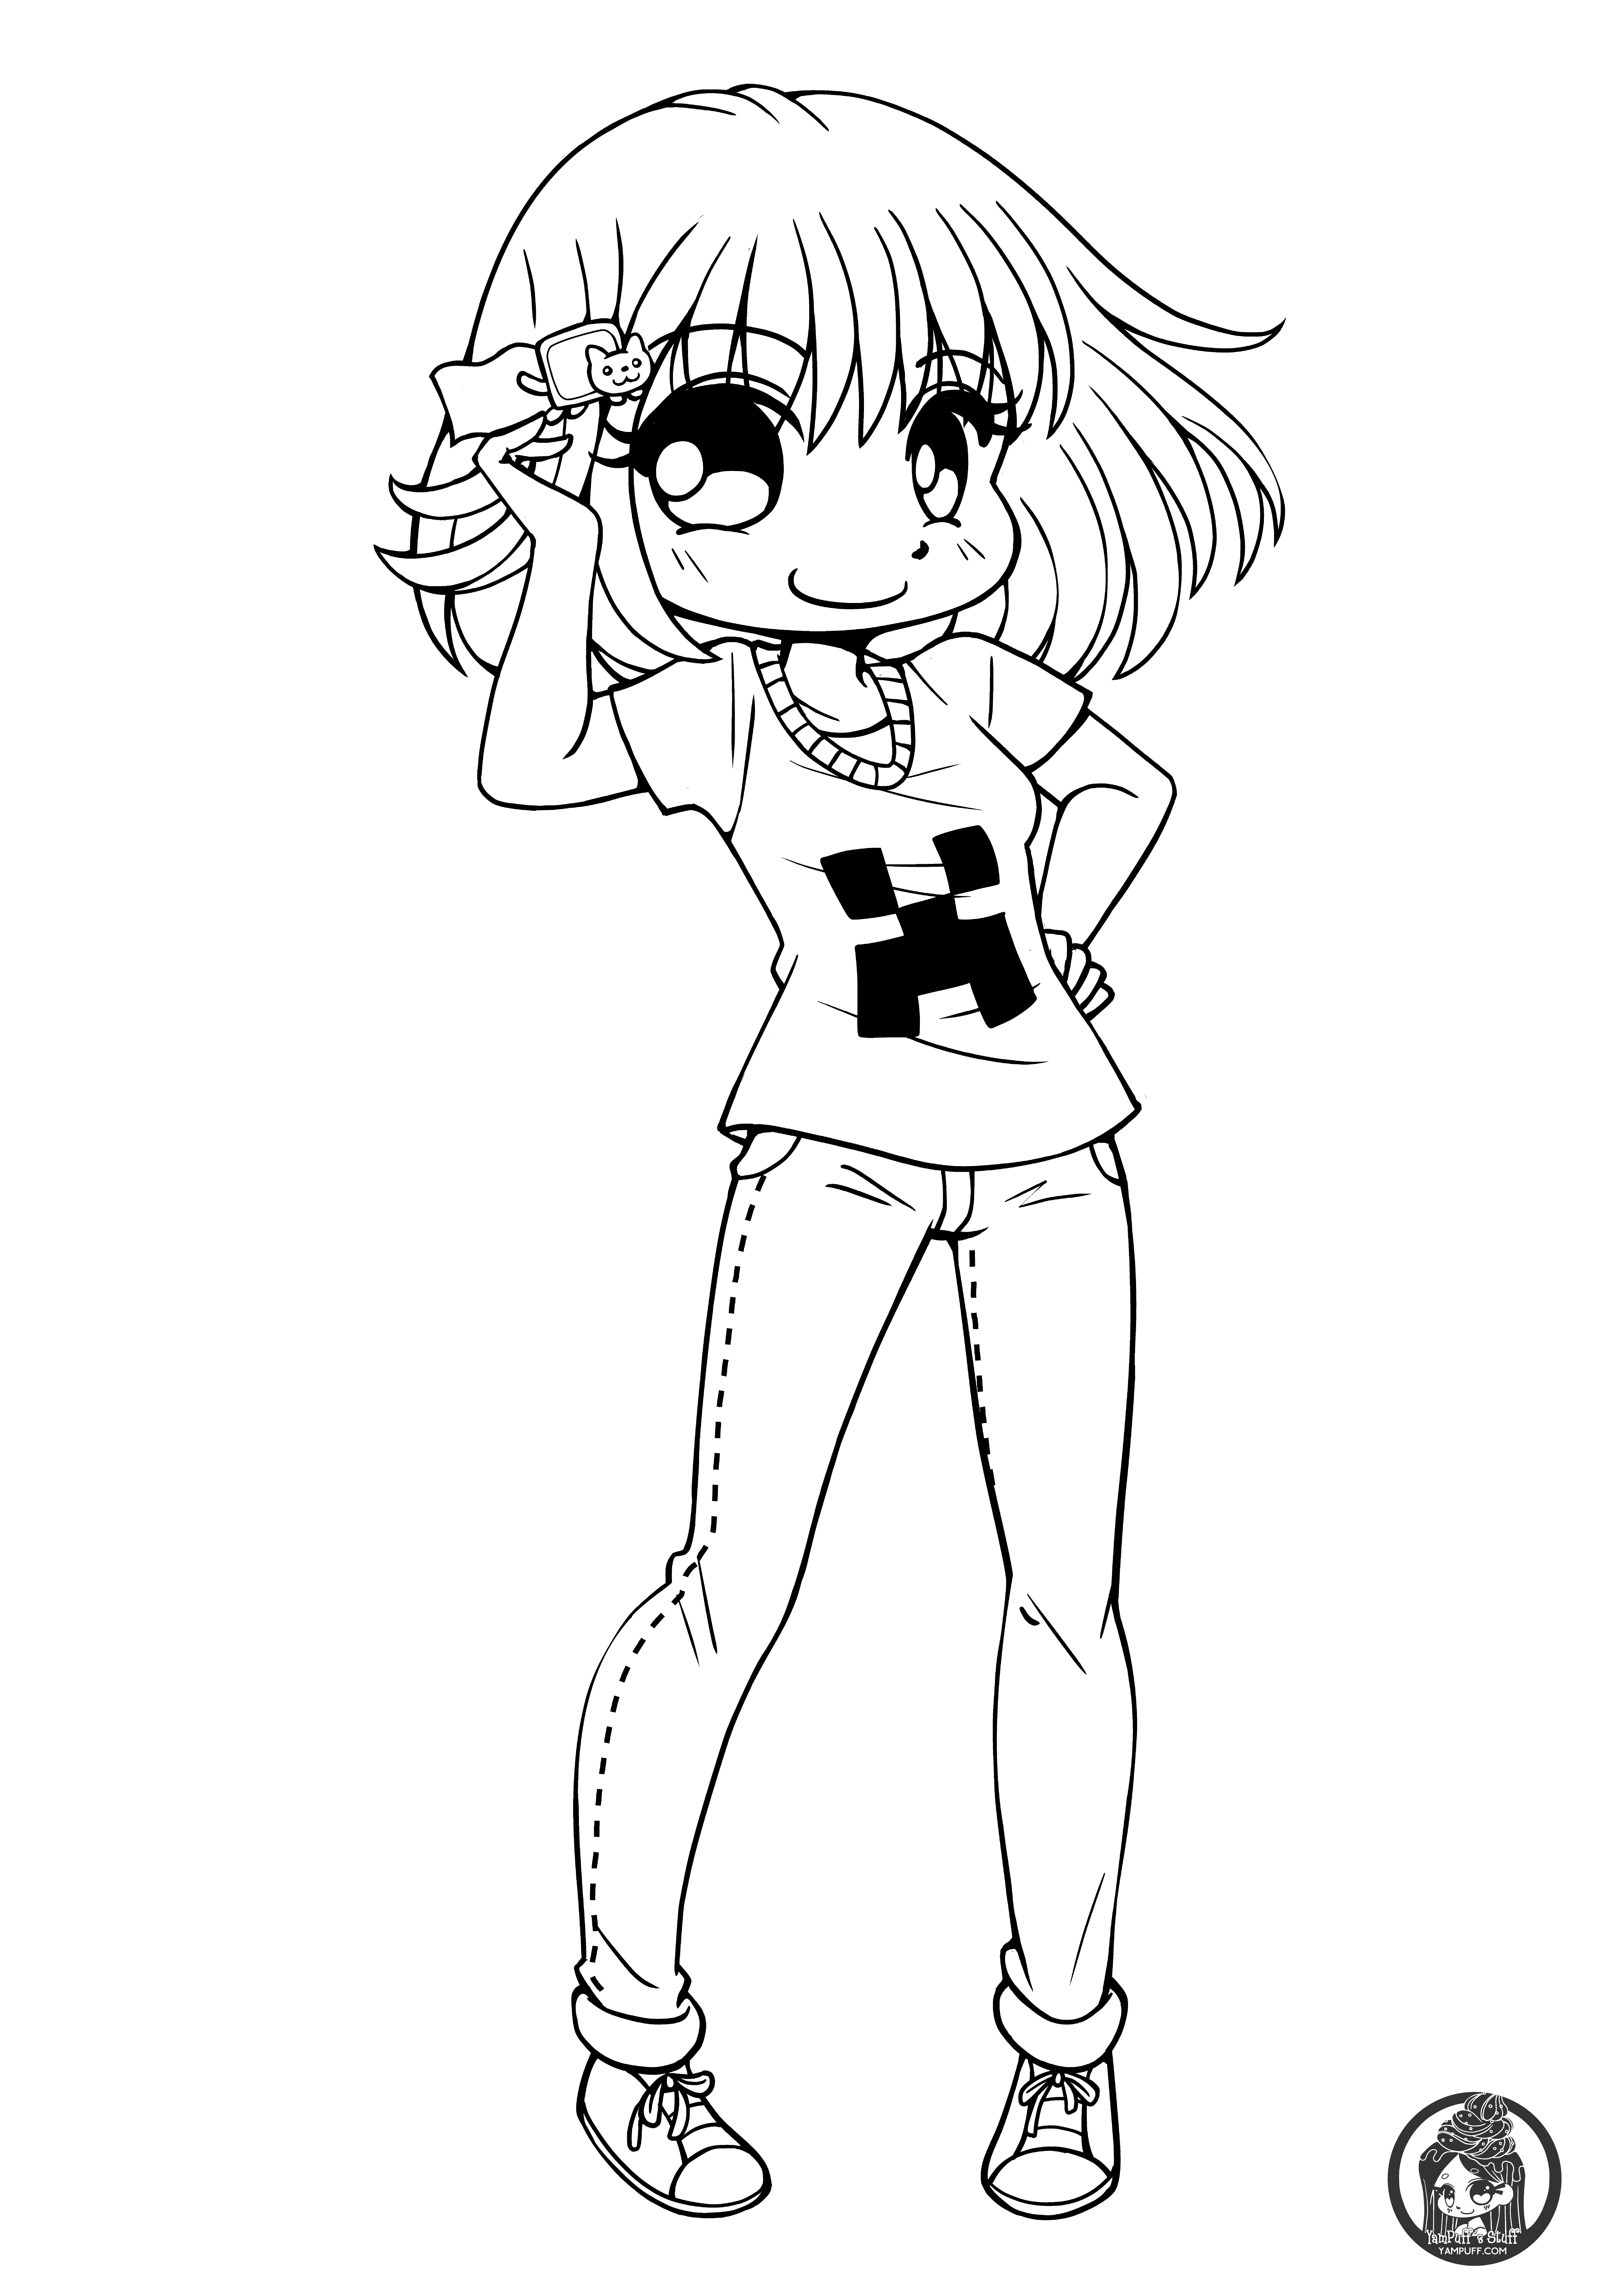 cute chibi girl coloring pages chibis free chibi coloring pages yampuff39s stuff pages chibi coloring girl cute